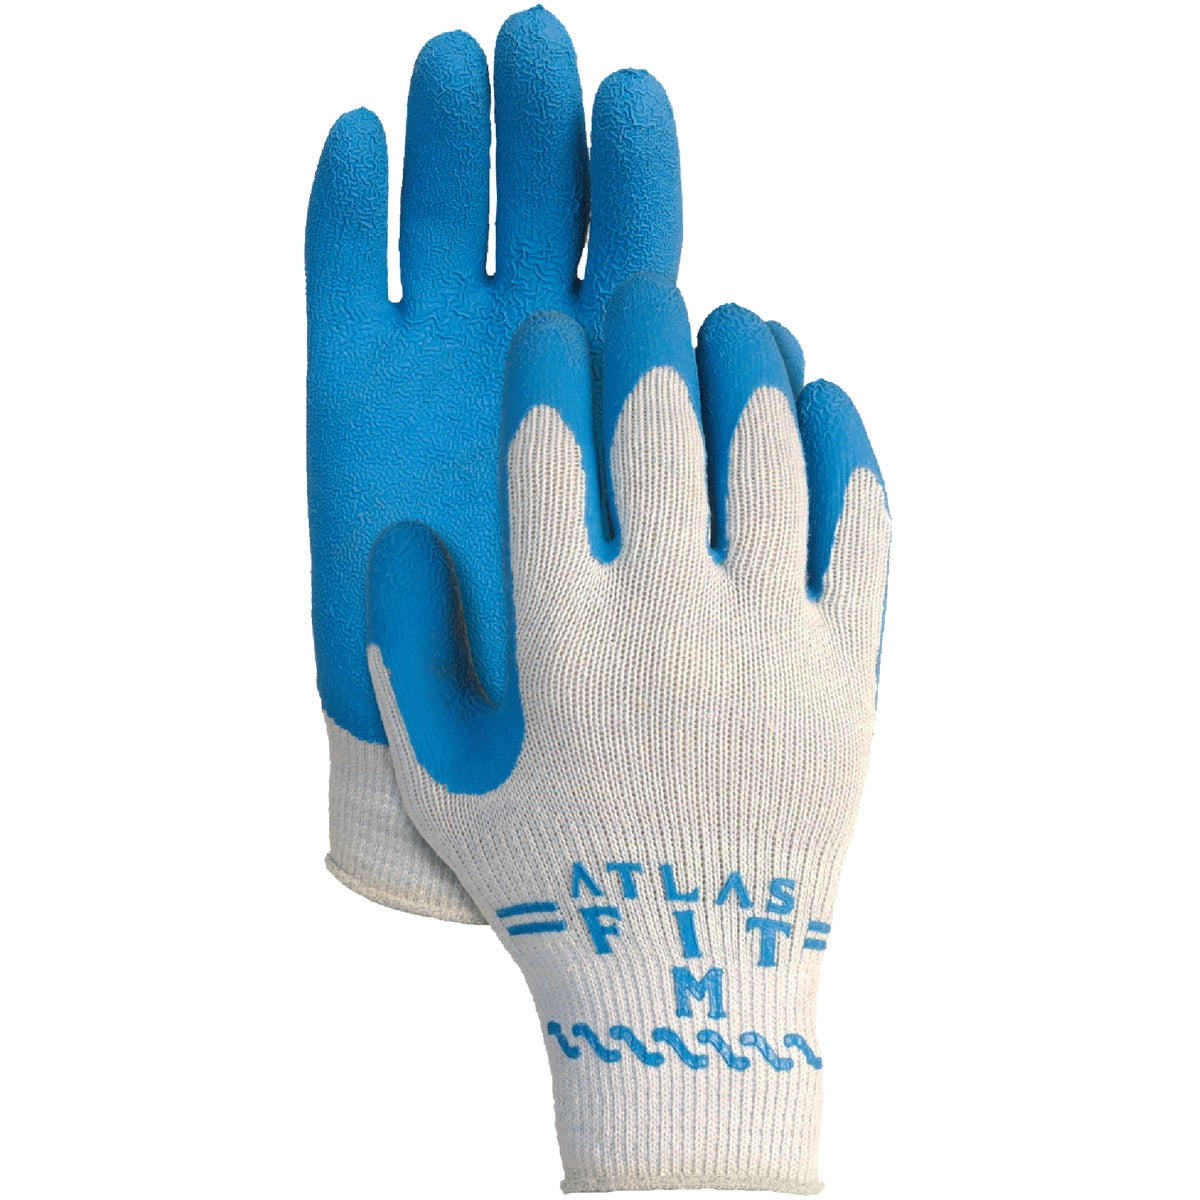 MED PALM DIPPED GLOVE - 300M-08.RT by Showa Best Glove